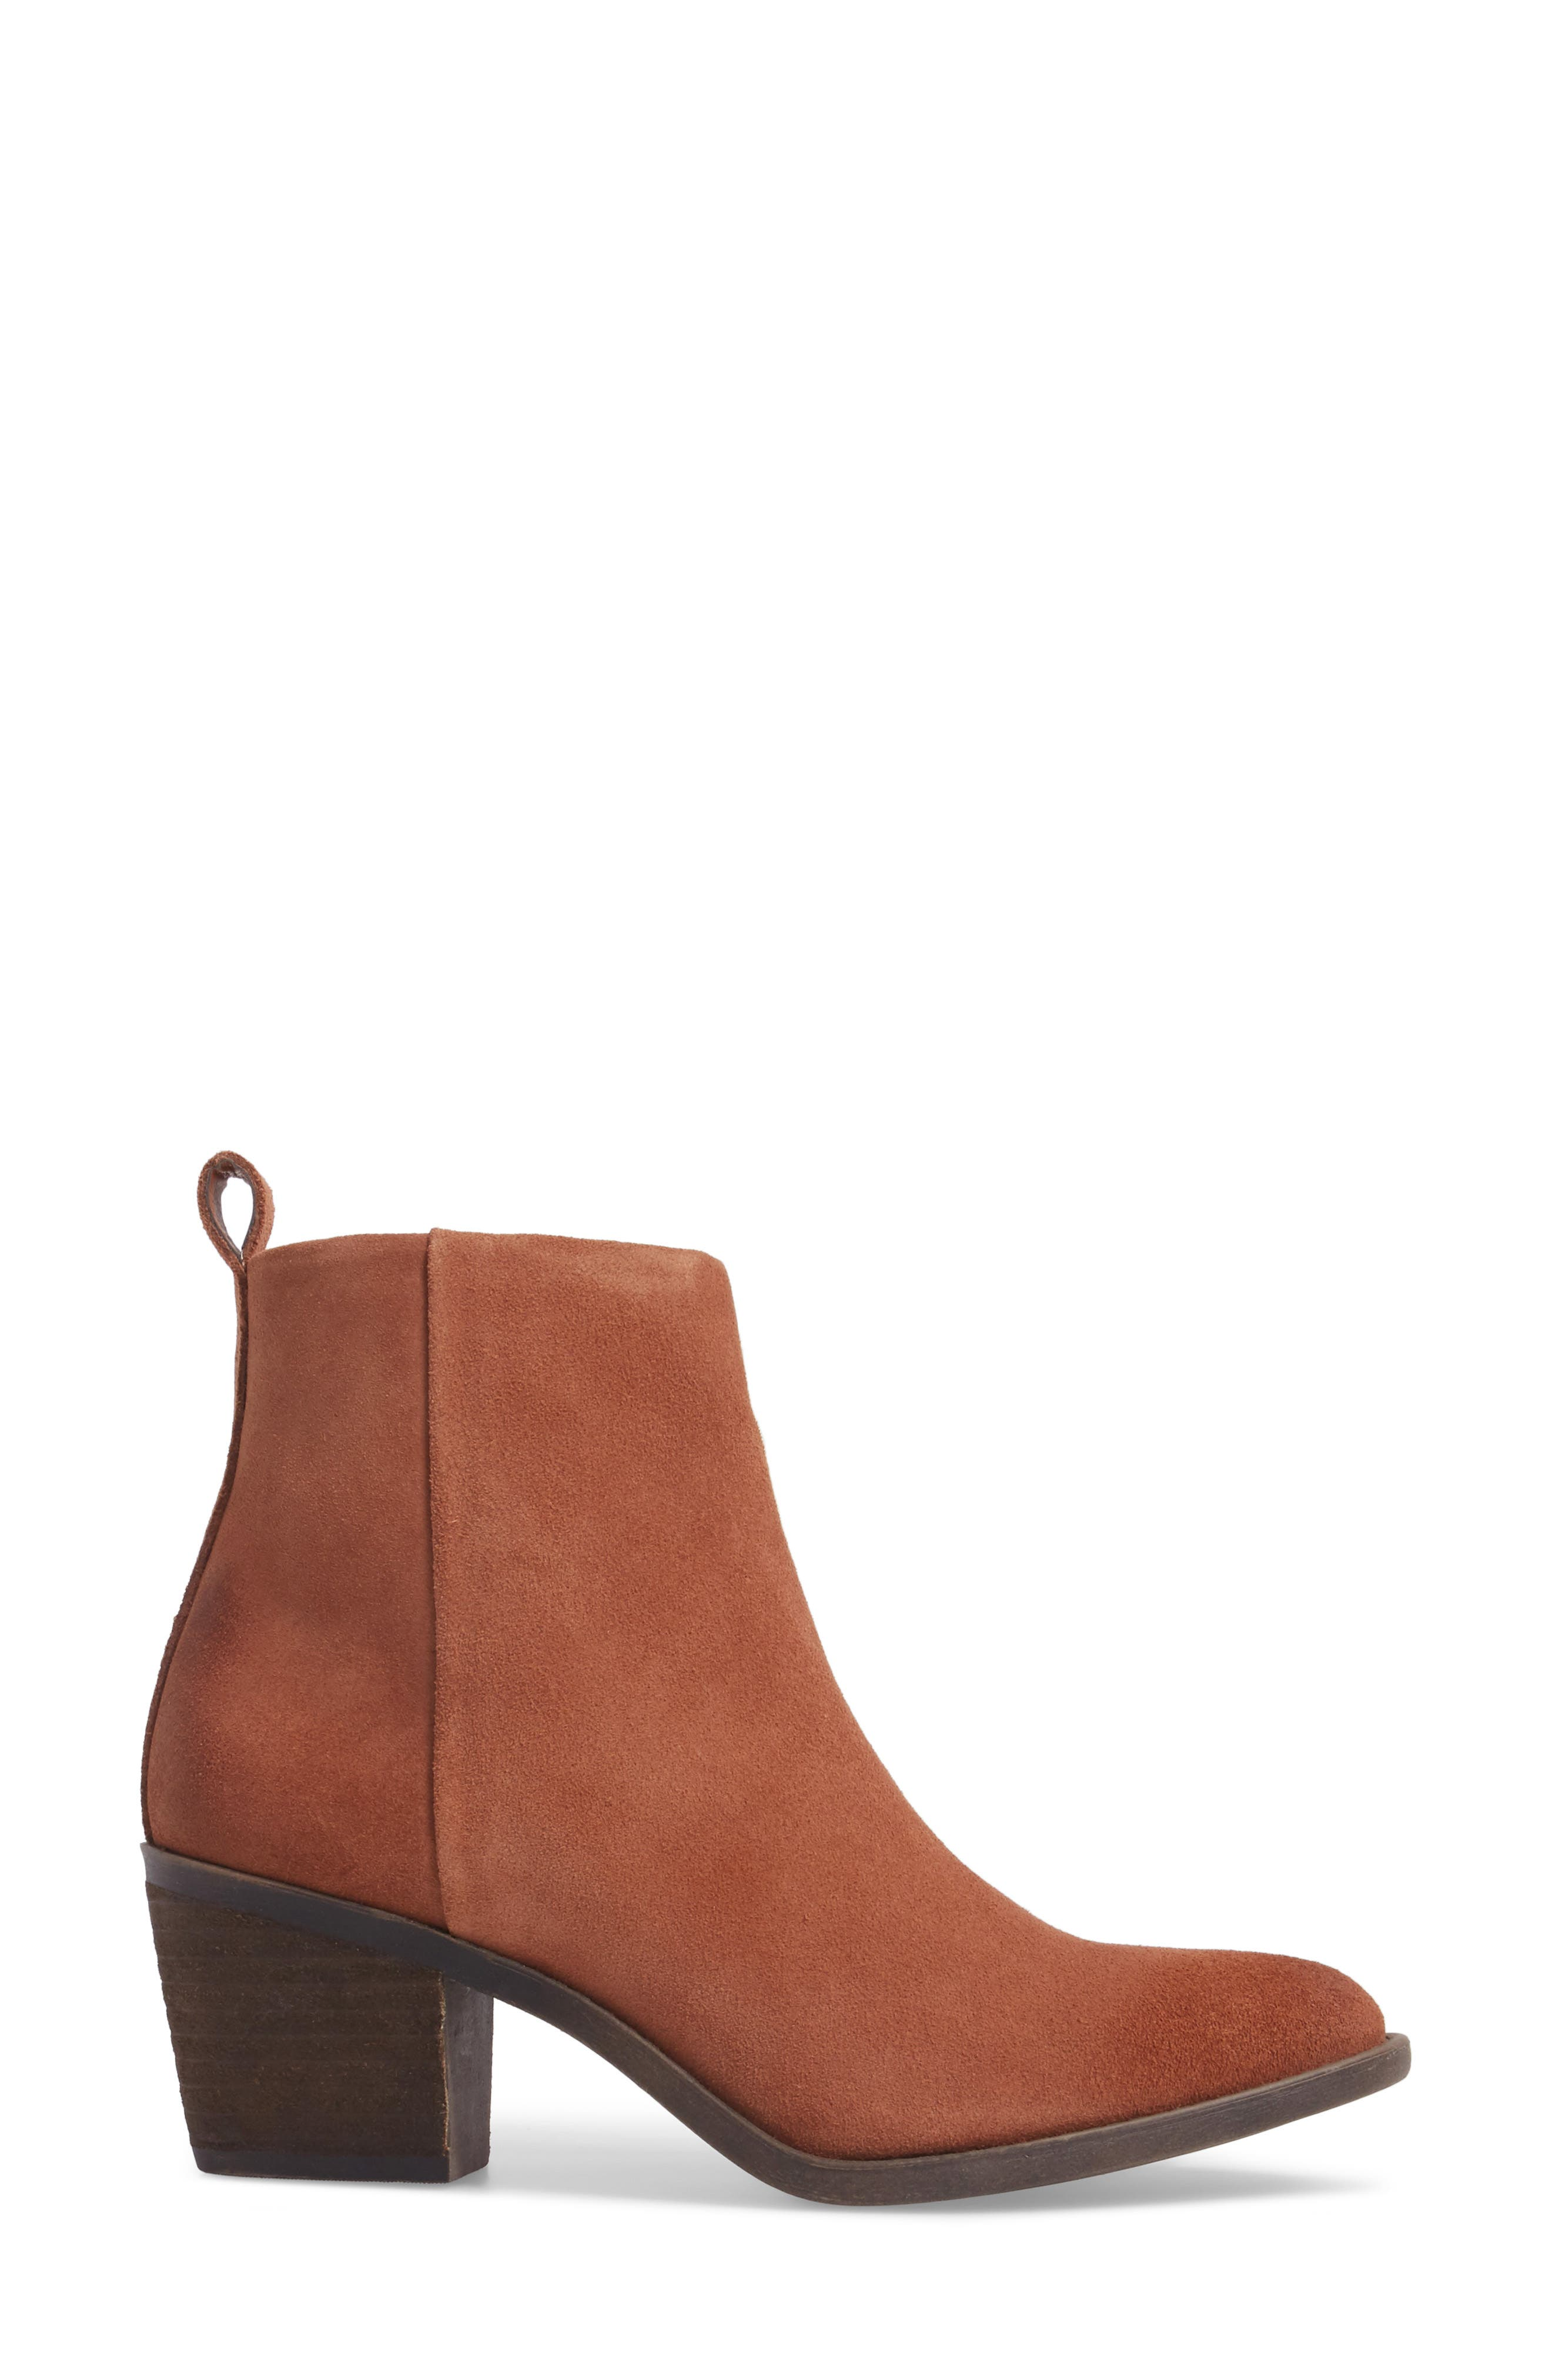 Natania Bootie,                             Alternate thumbnail 3, color,                             Toffee Suede